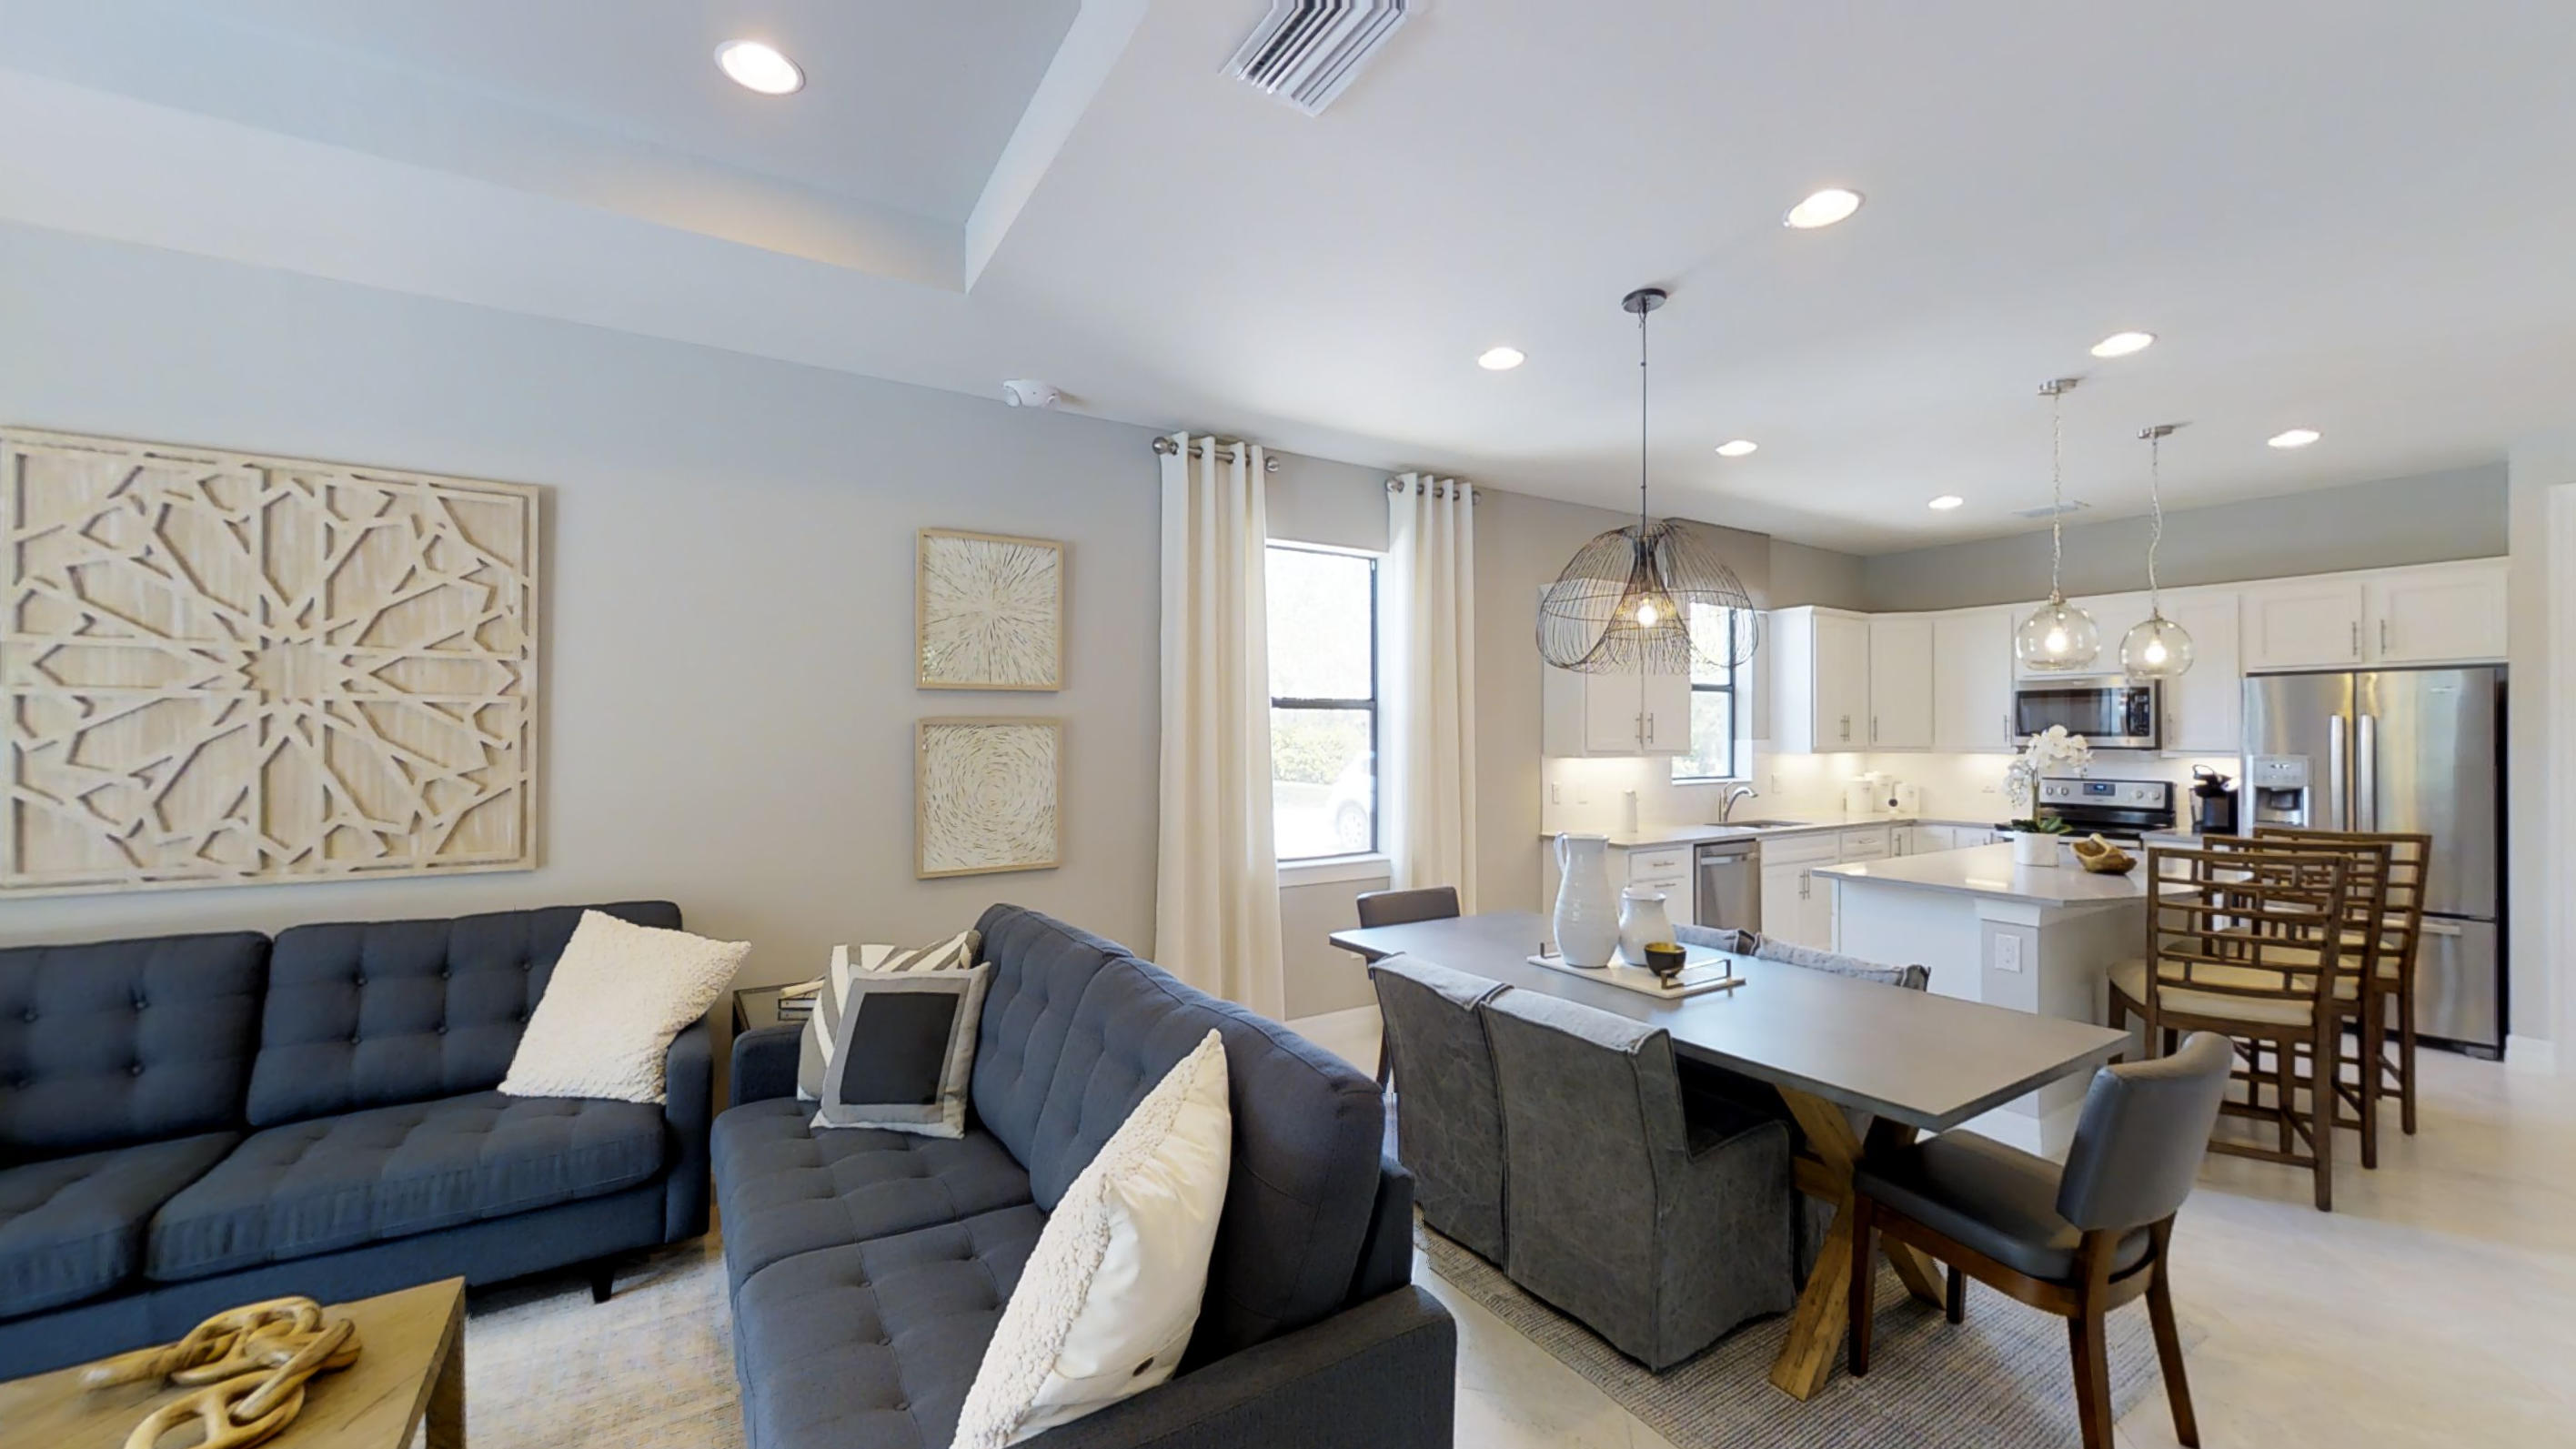 Pulte Homes: The Canopy Model